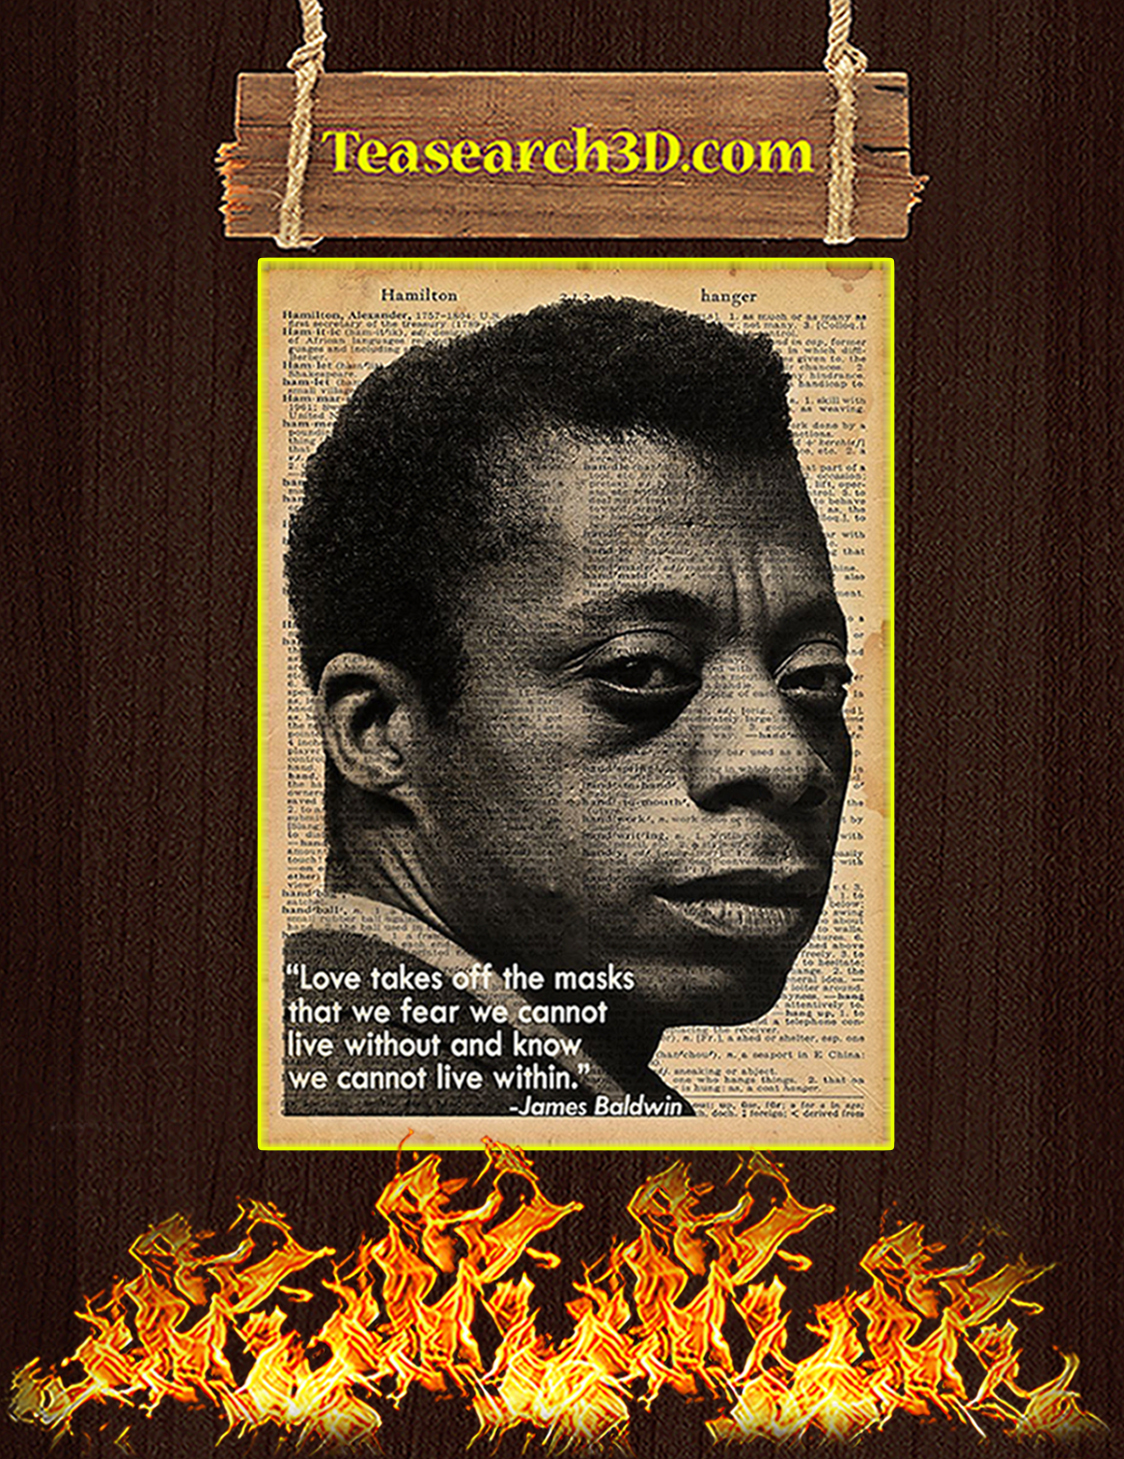 James Baldwin Love takes off the masks poster A3